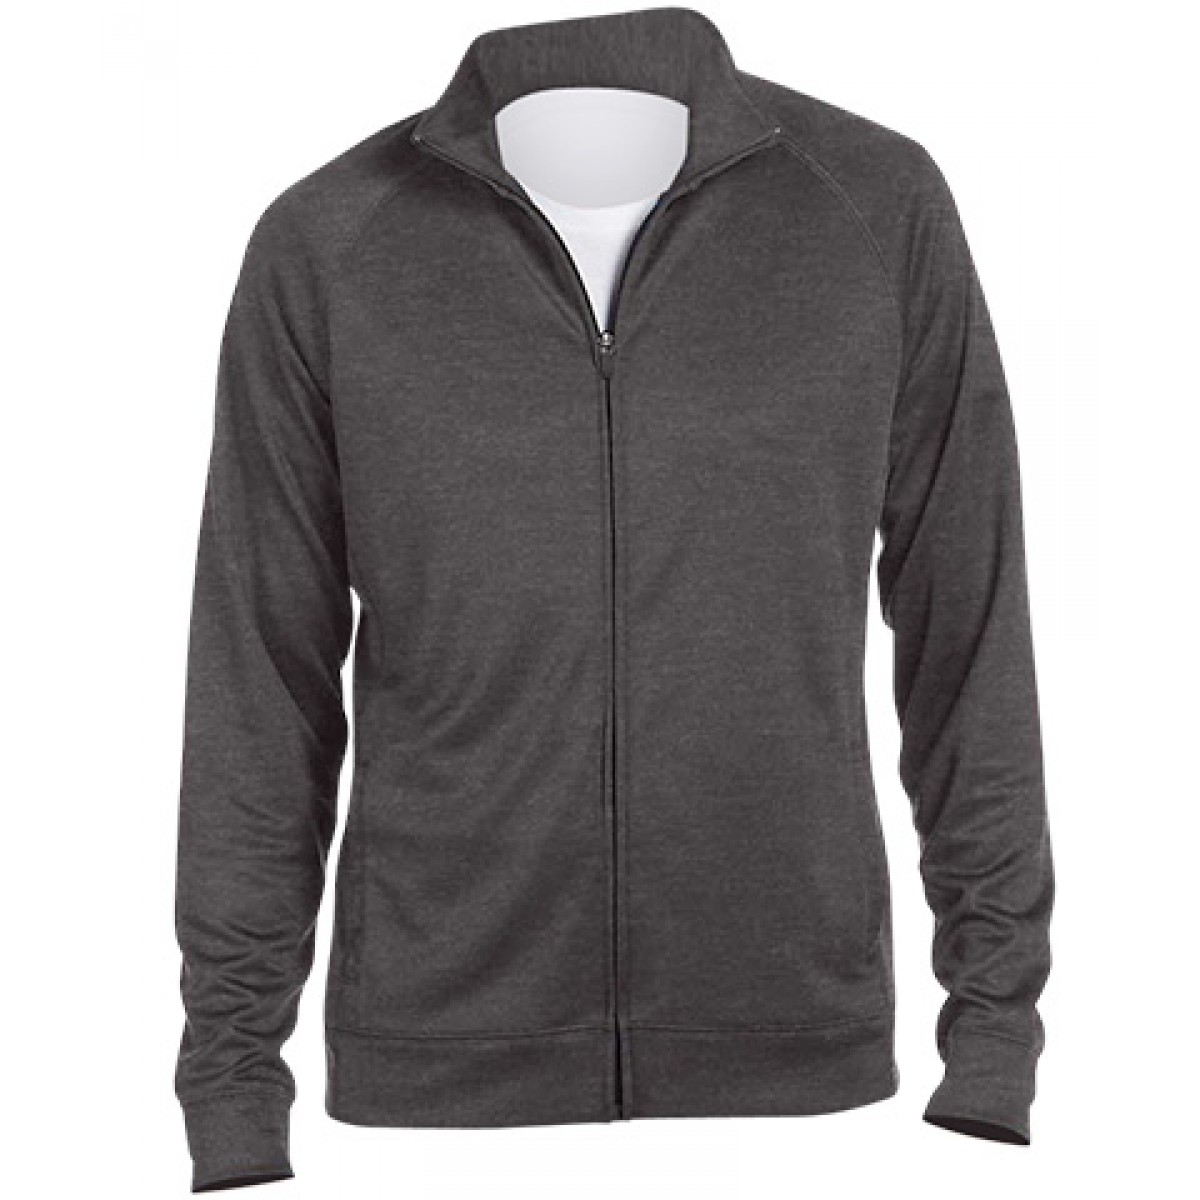 Men's Lightweight Sports Jacket-Sports Grey-YL